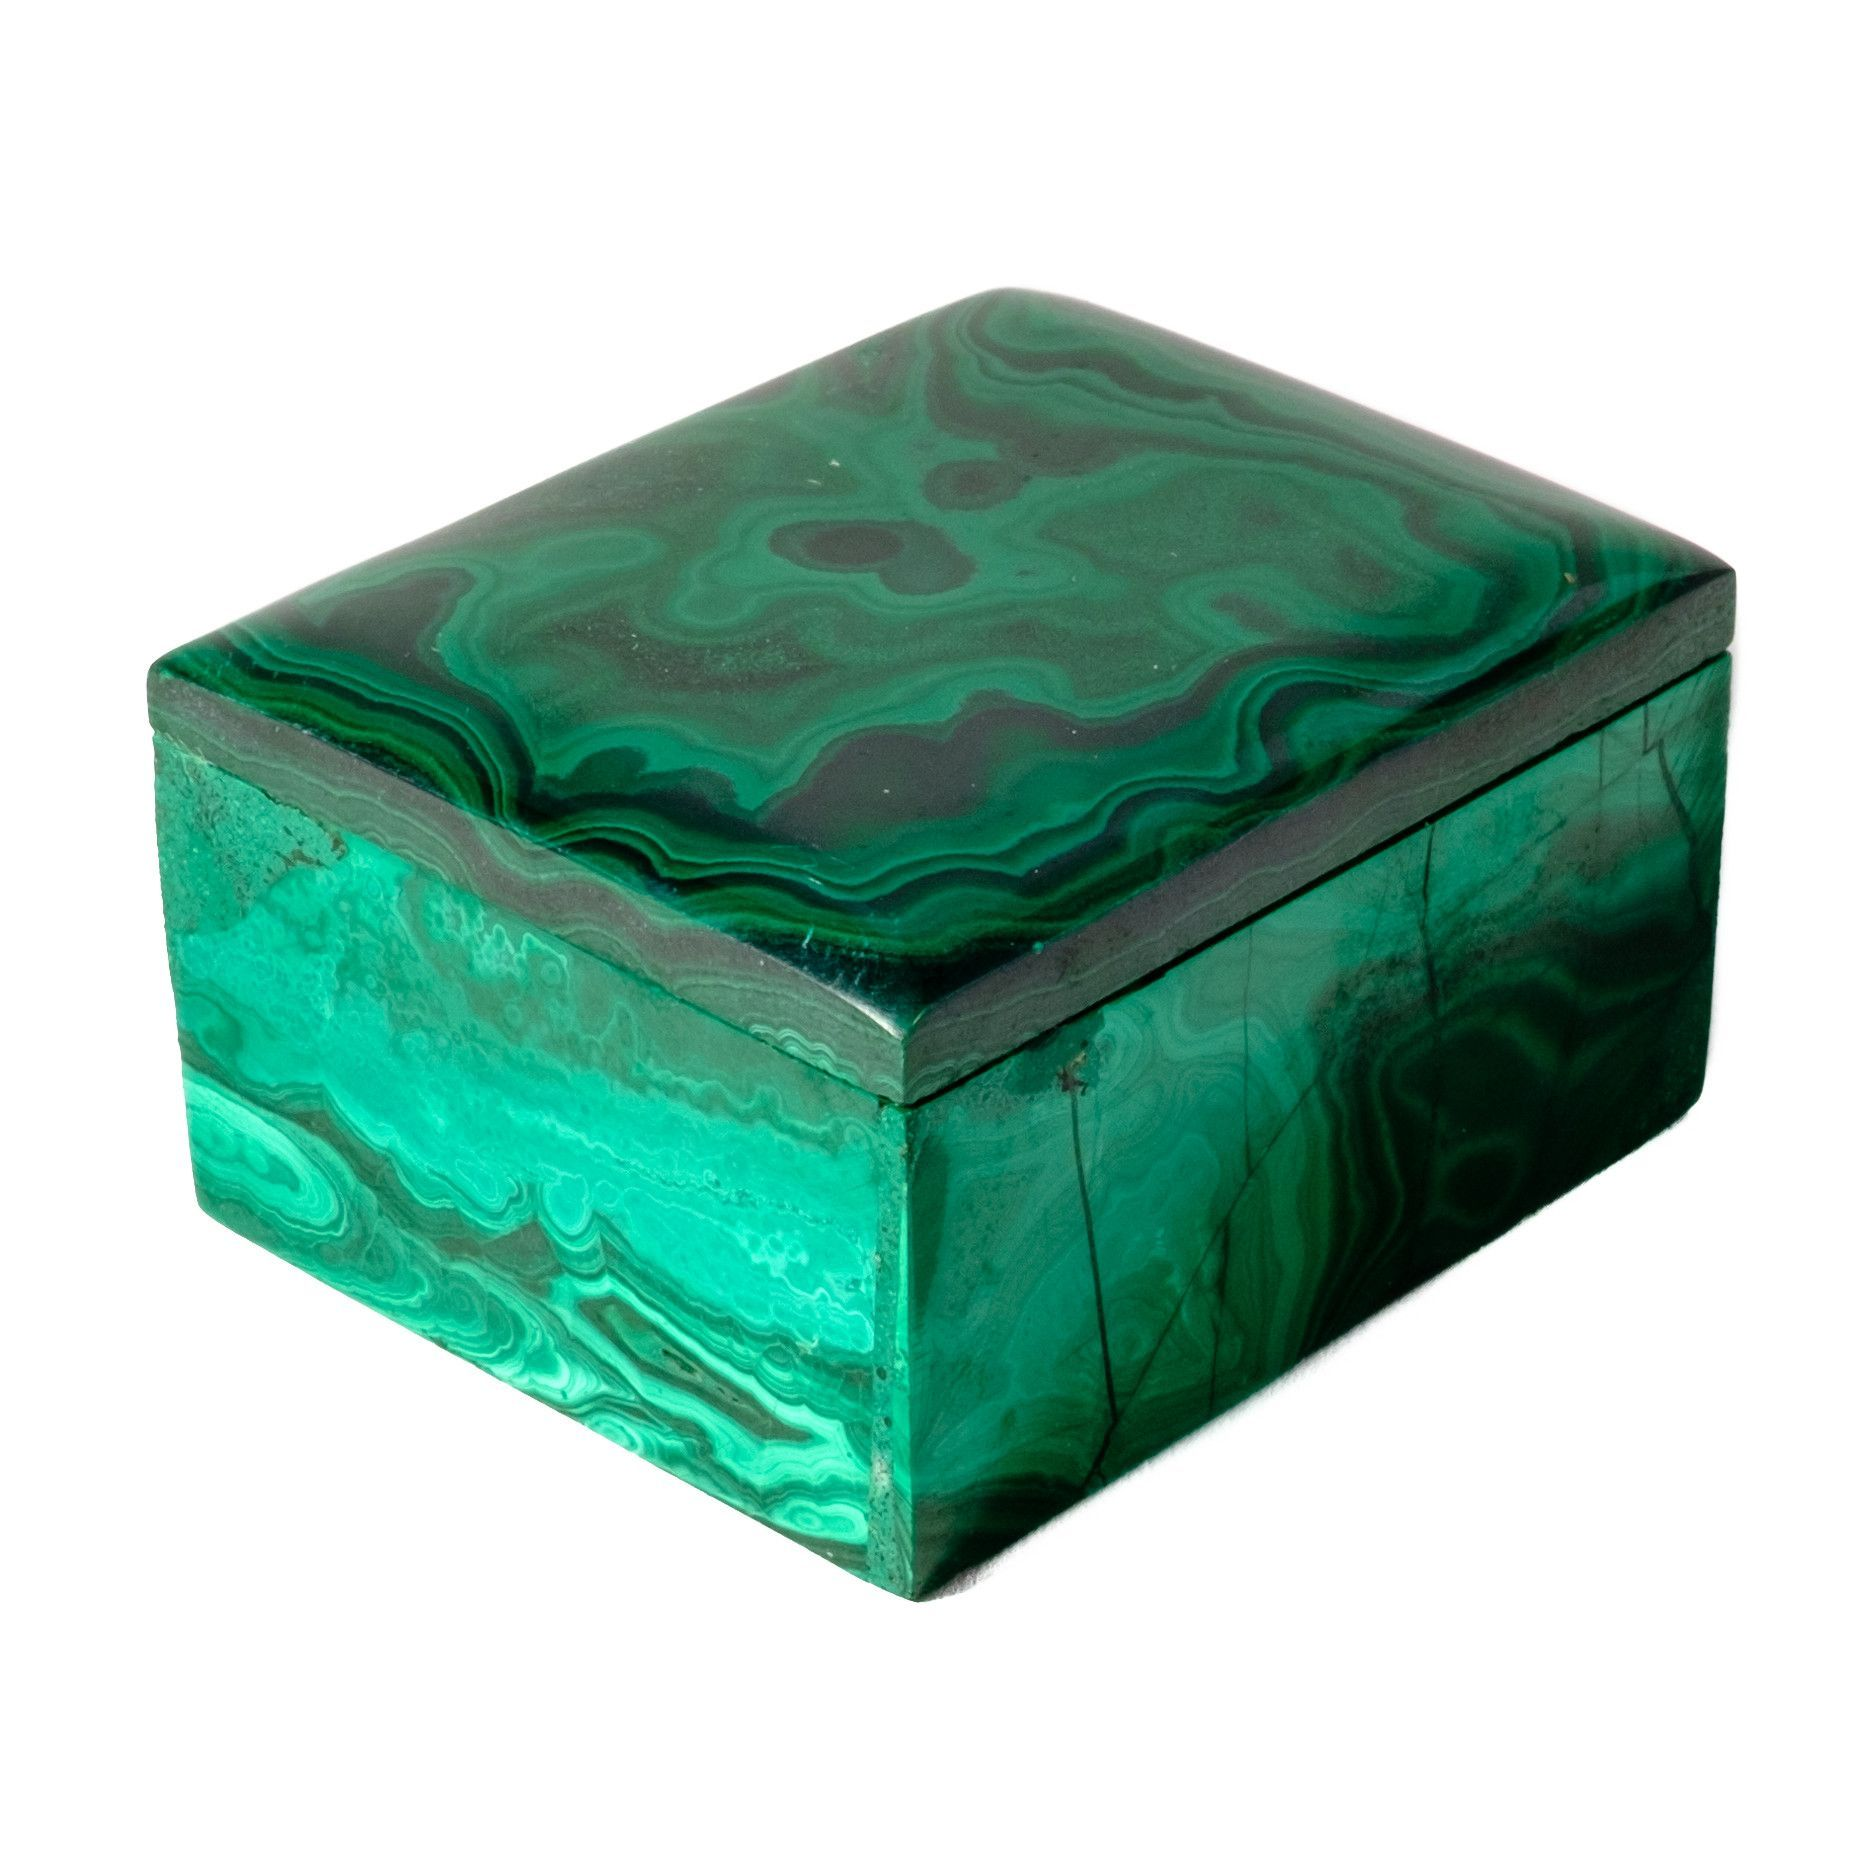 Add a bit of organic opulence and cool, on-trend style to the desk, console, or nightstand with this malachite box, polished to perfection. Malachite is a beautiful green stone that is most recognized